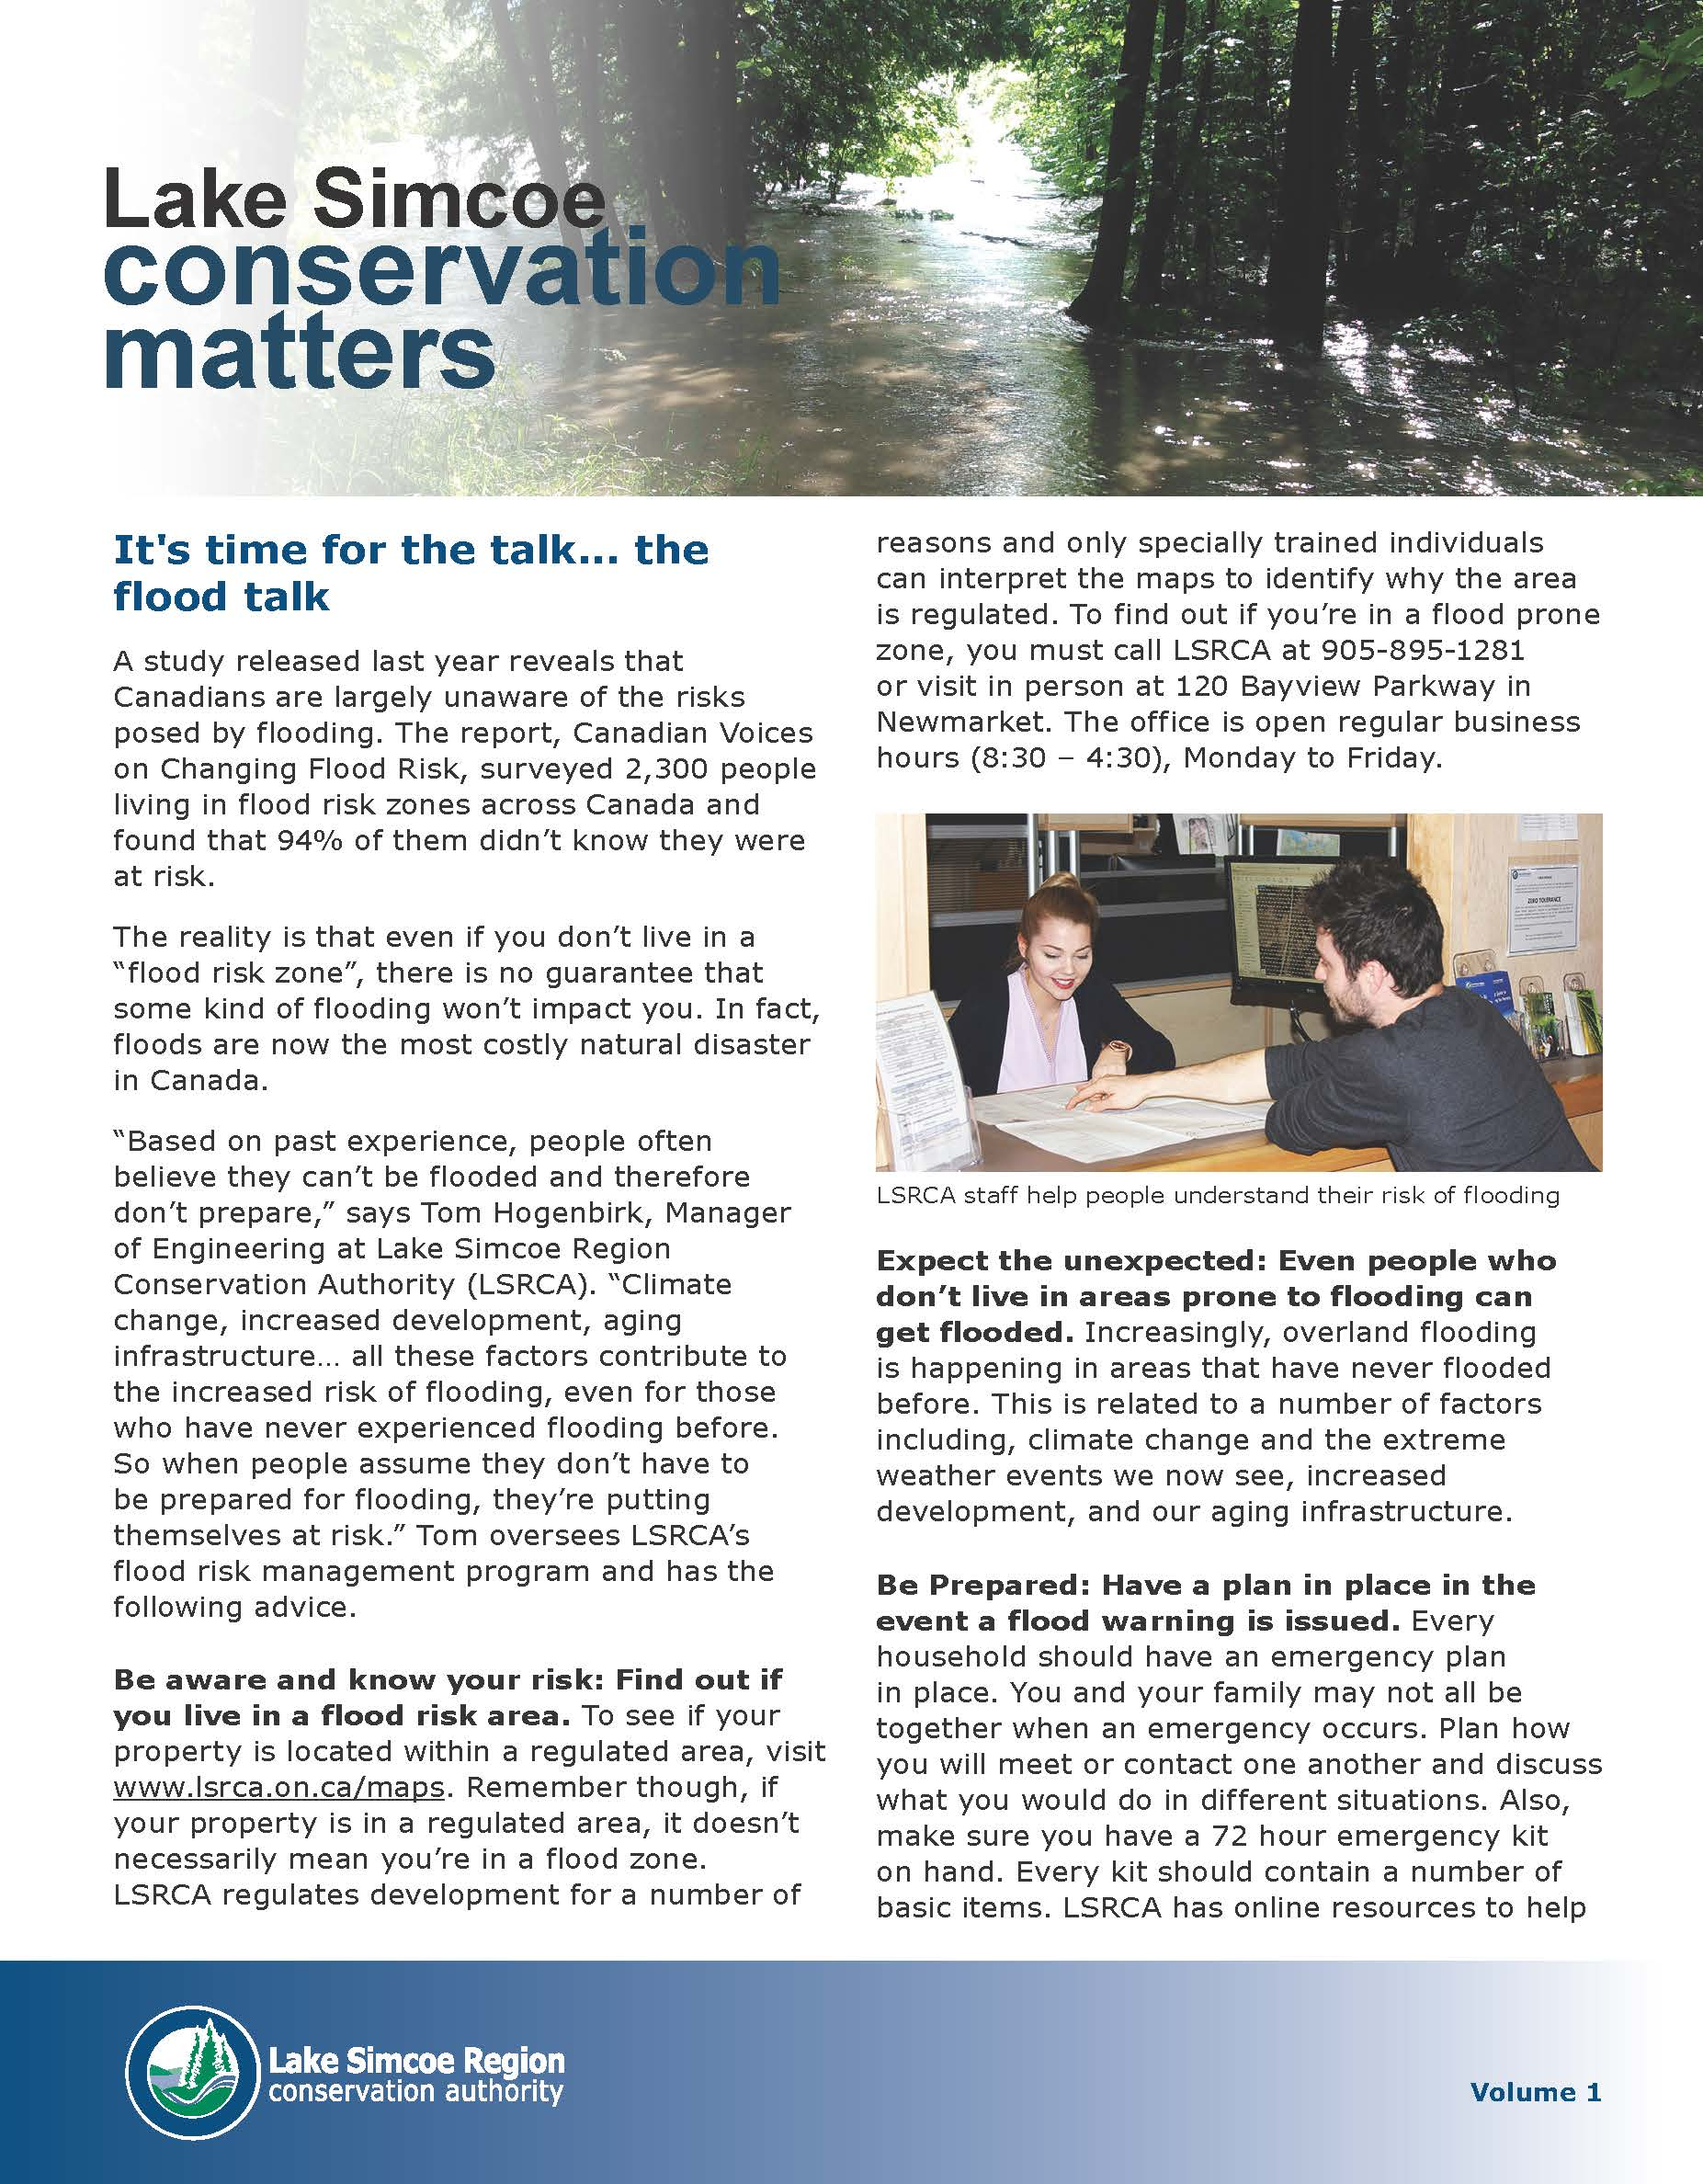 ConservationMatters_newsletter_Apr2018_Flooding_FINAL_Page_1.jpg